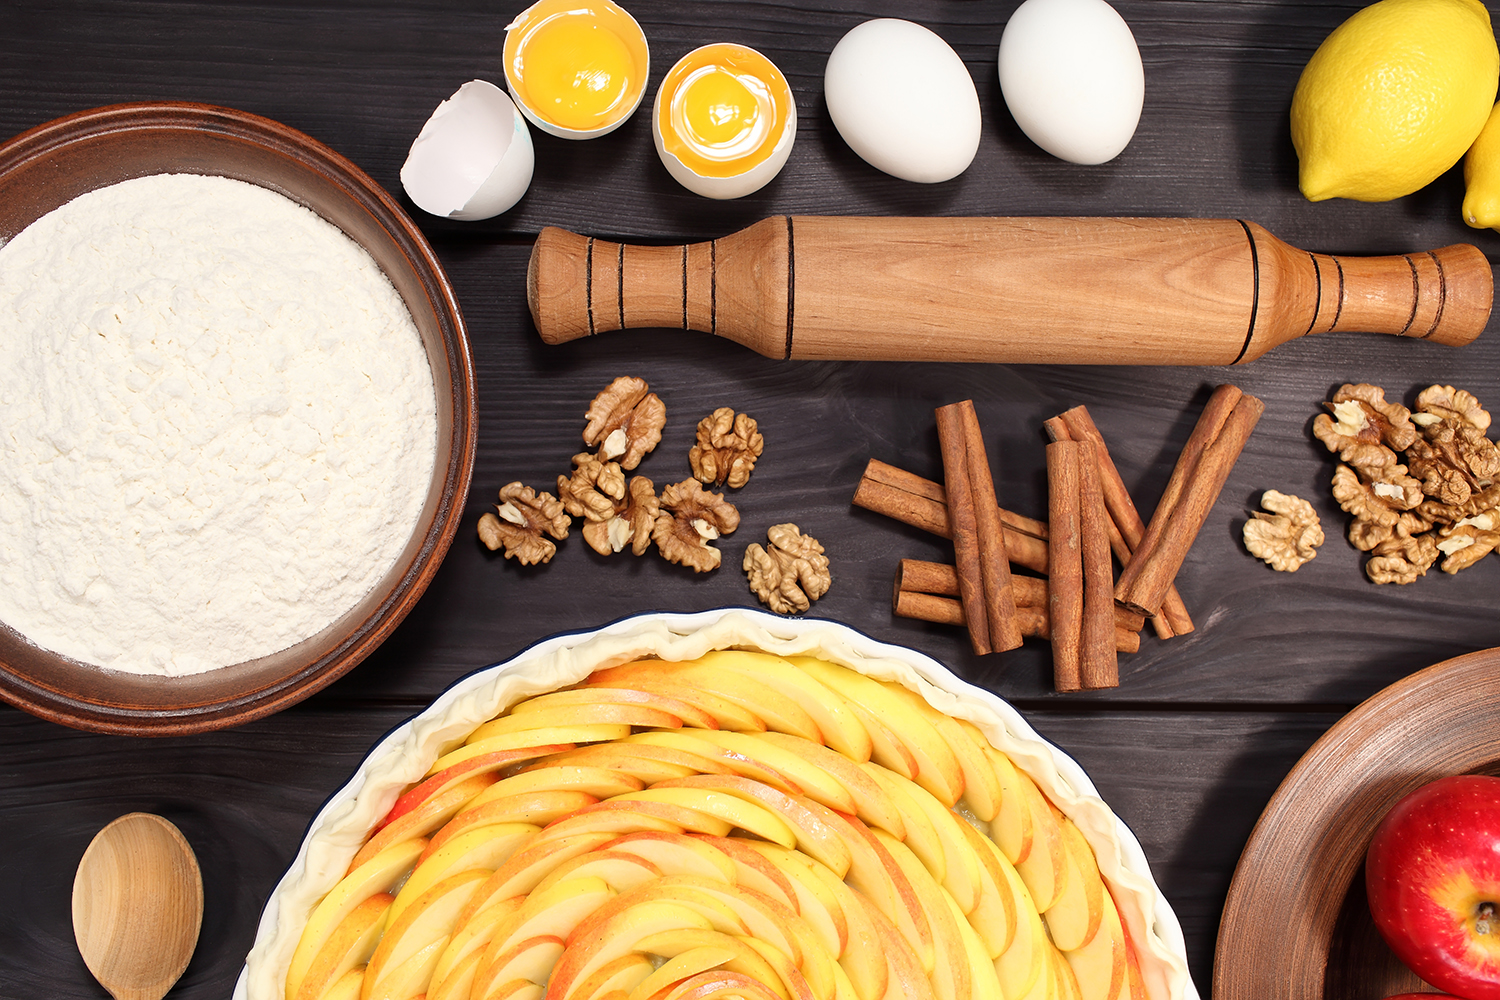 Set 12 photos Apple Pie and raw ingredients for baking. Sweet food series. Dessert. Top view example image 7